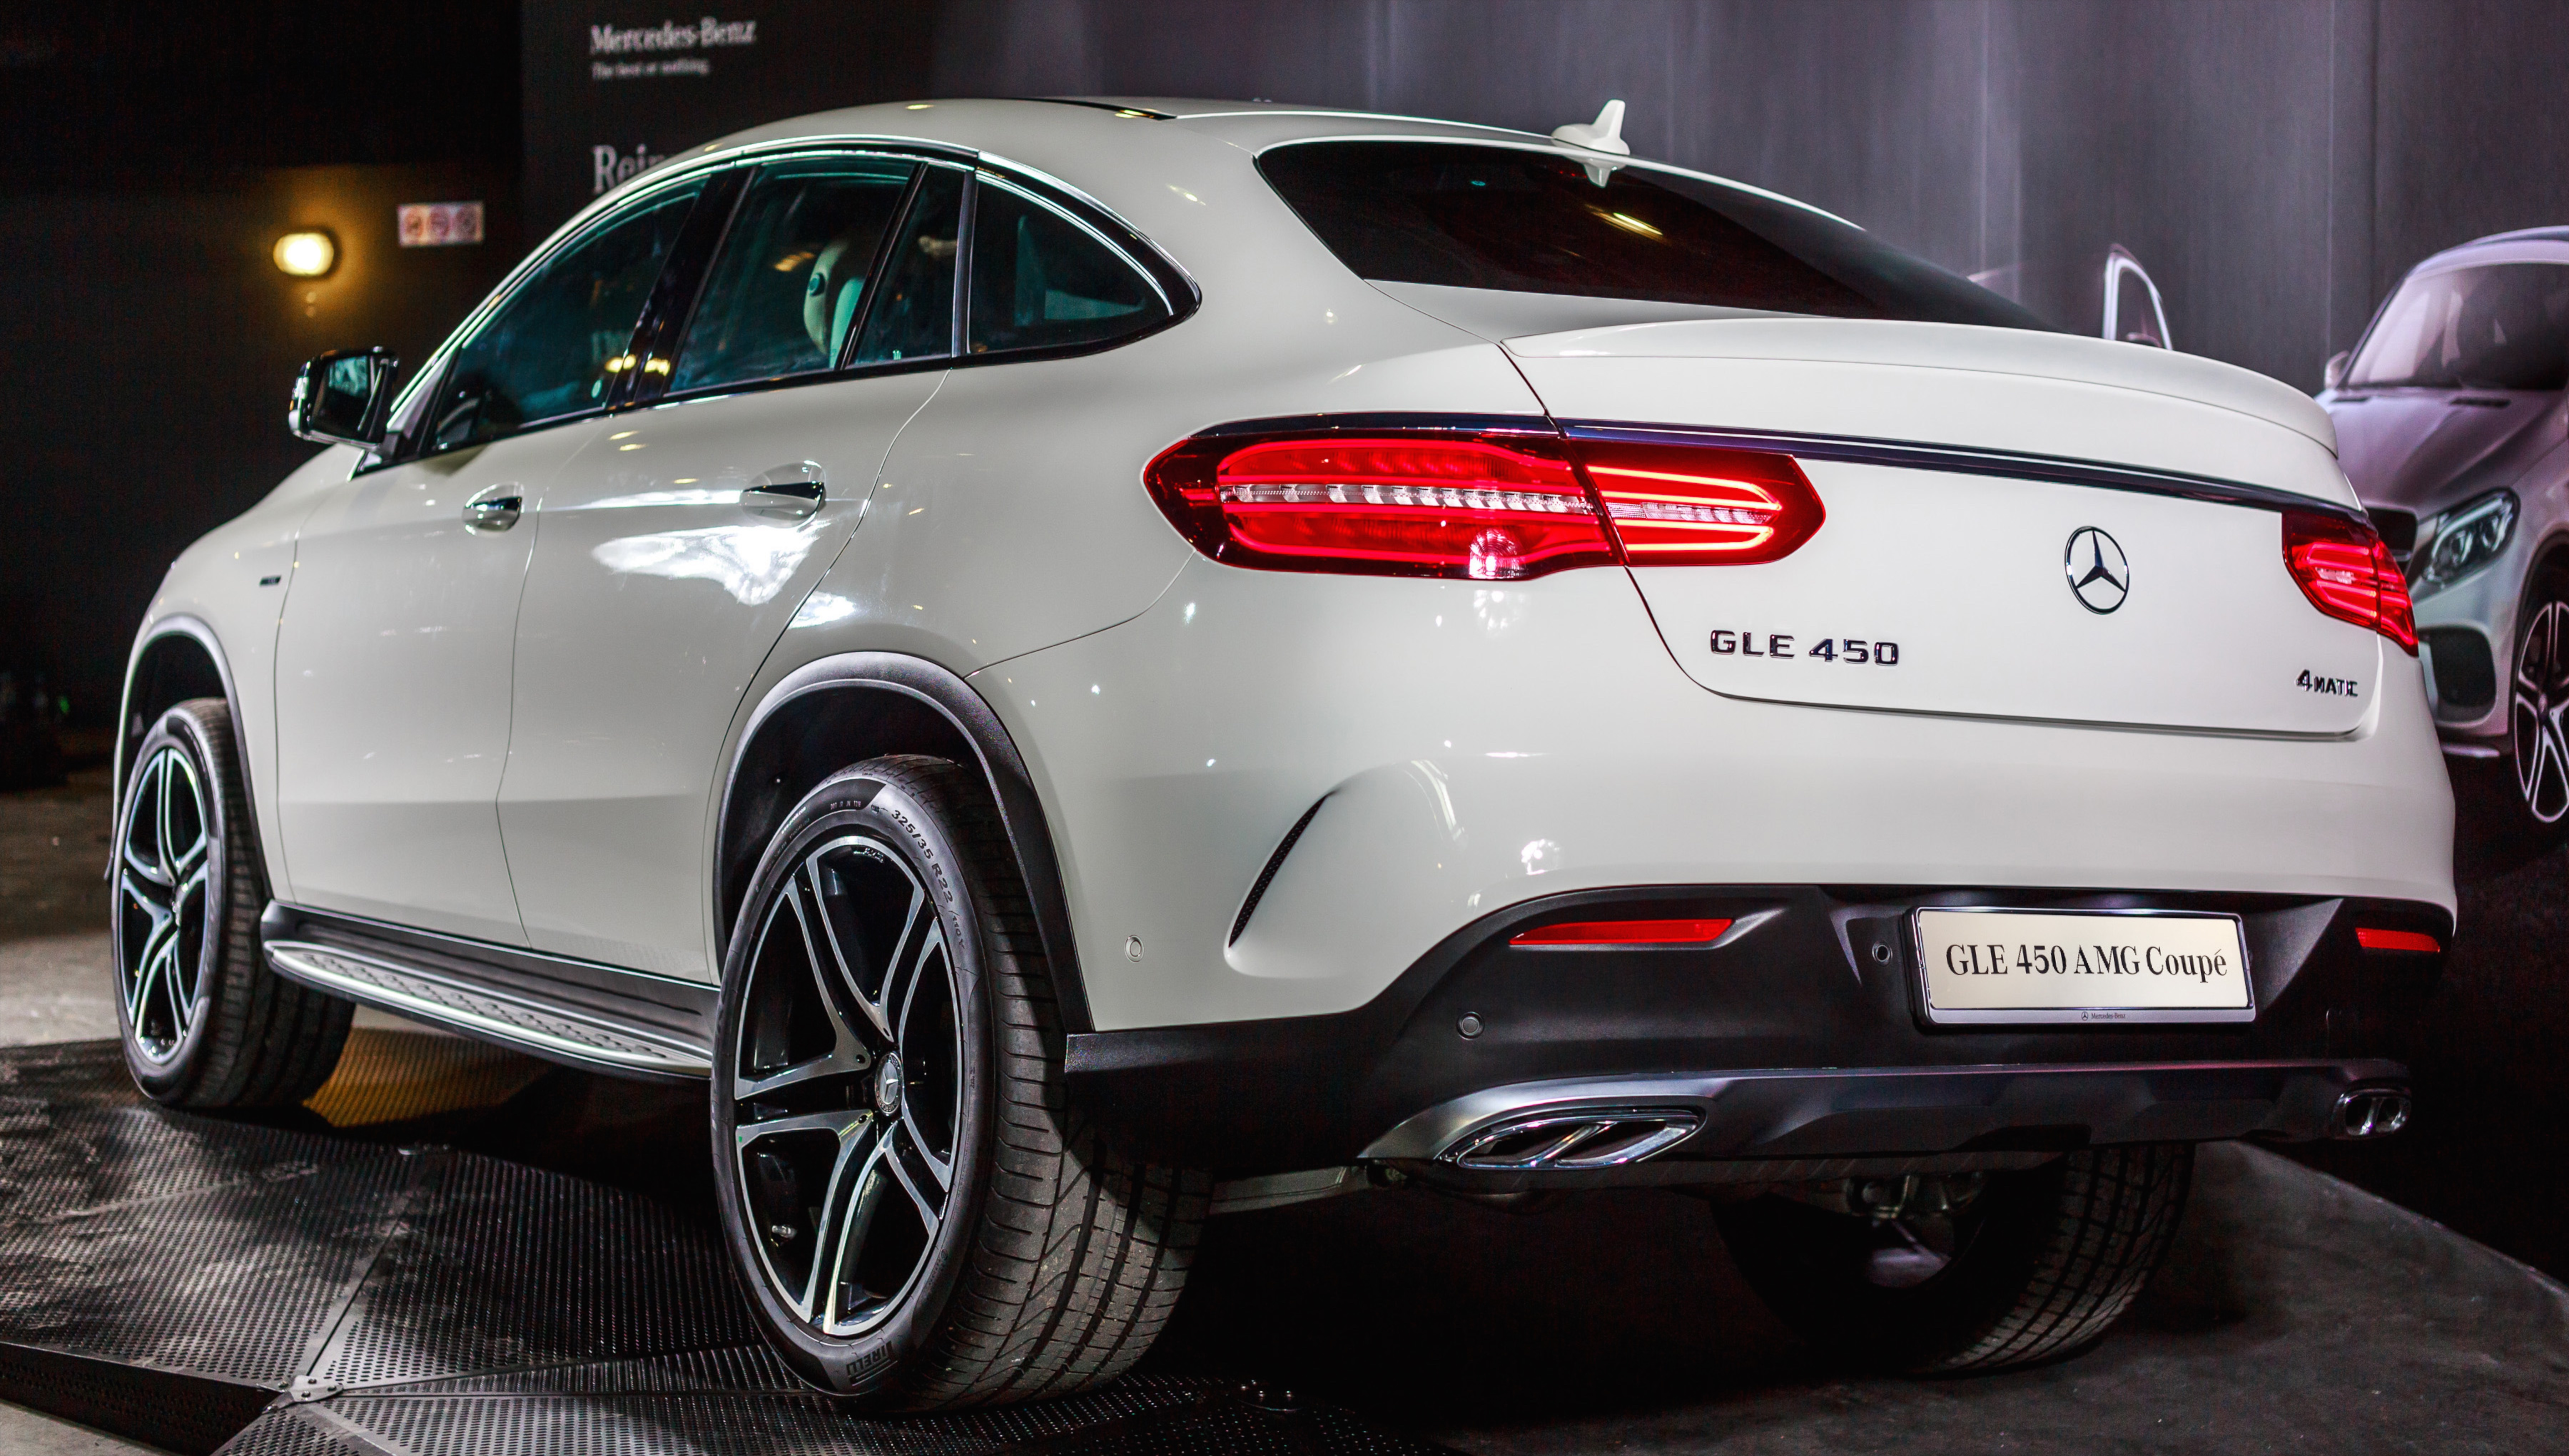 Mercedes GLE-Class Coupe (C167) reviews 2019